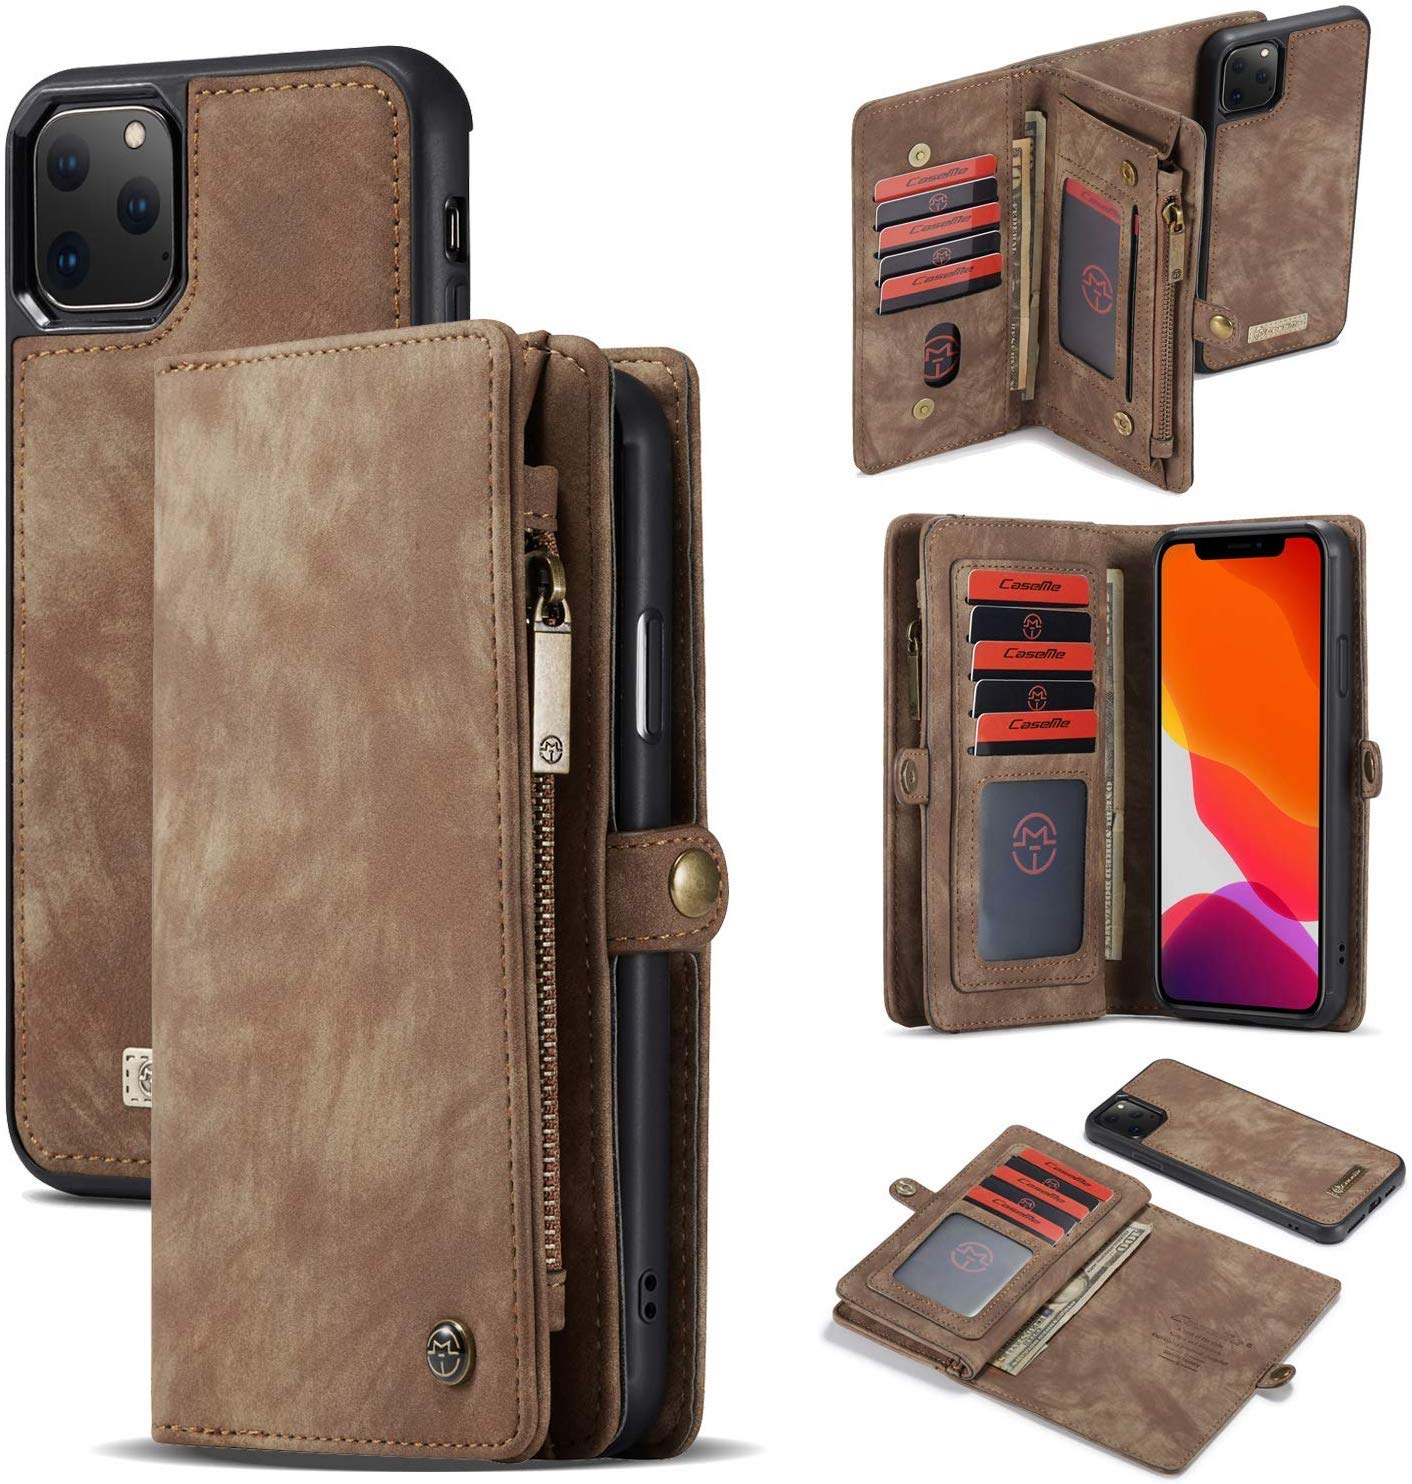 iPhone 11 Pro Case,Locase iPhone 11 Pro Wallet Purse 5.8Inch iPhone 11 Pro Flip Folio Wallet Case iPhone 11 Pro Shockproof Interior Protective Case 11 Card Holder 3 Cash Slot Magnetic Zipper Wallet by Locase